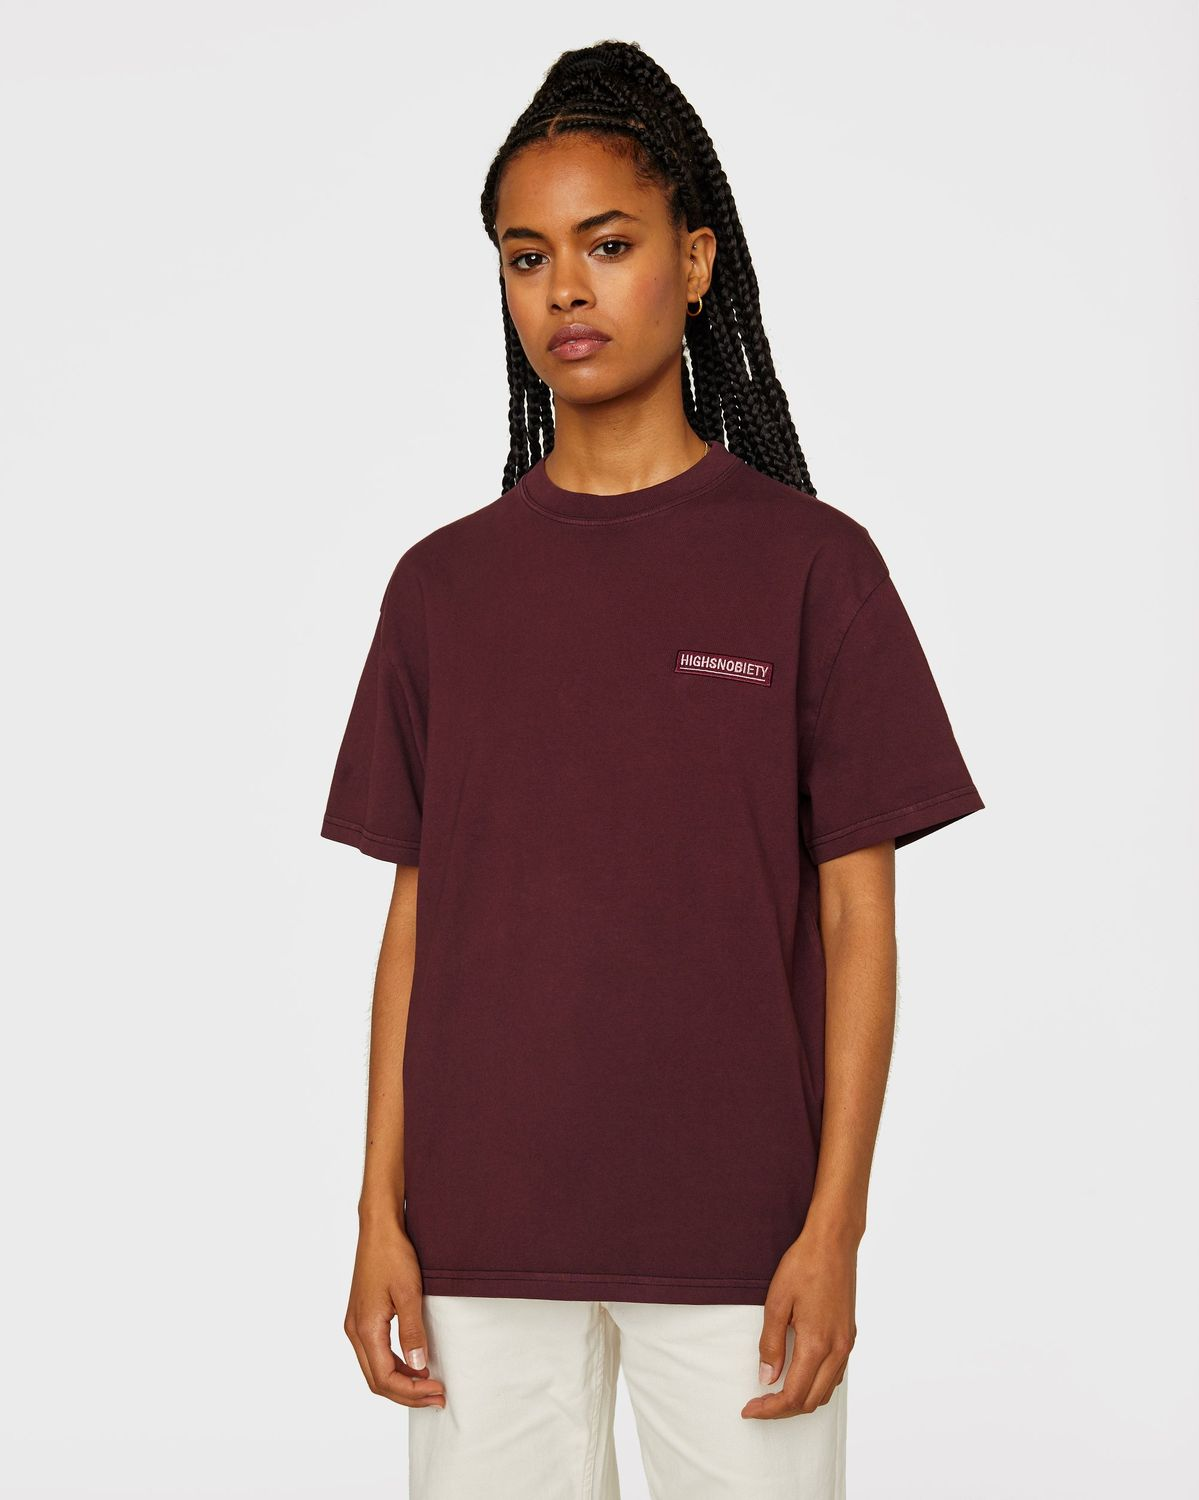 Highsnobiety Staples — T-Shirt Burgundy - Image 6